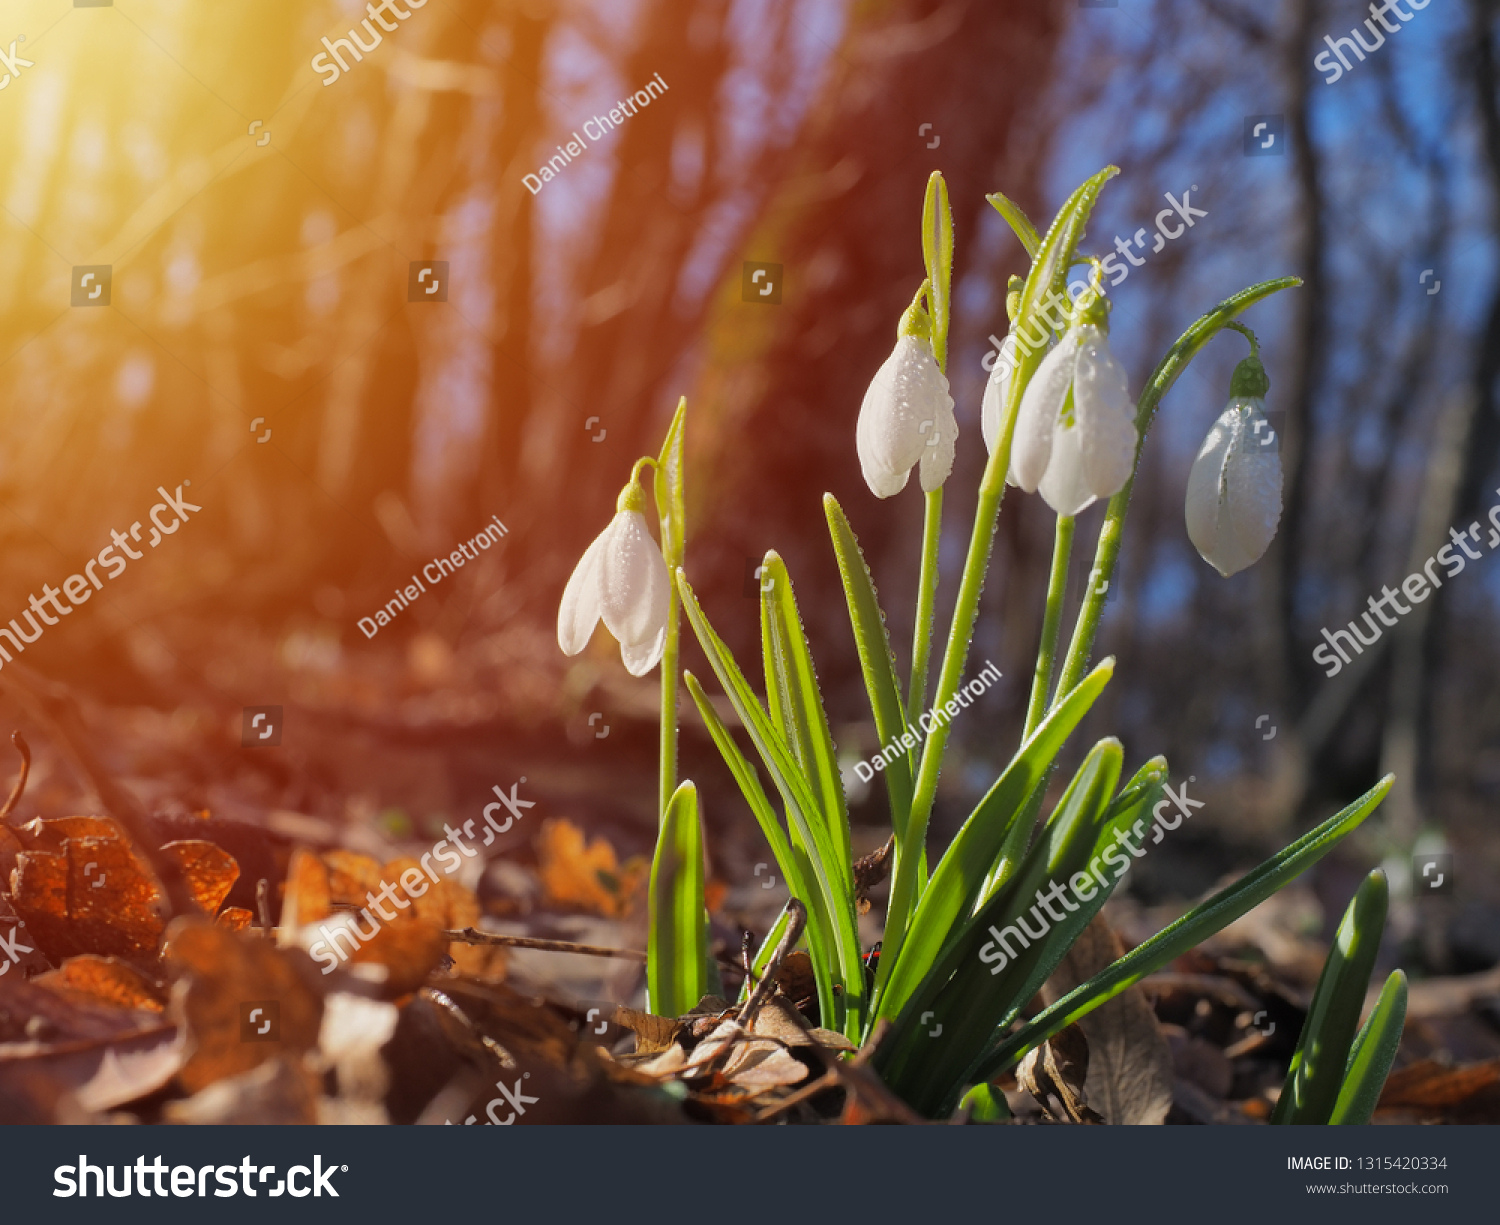 Snowdrop or common snowdrop (Galanthus nivalis) flowers #1315420334